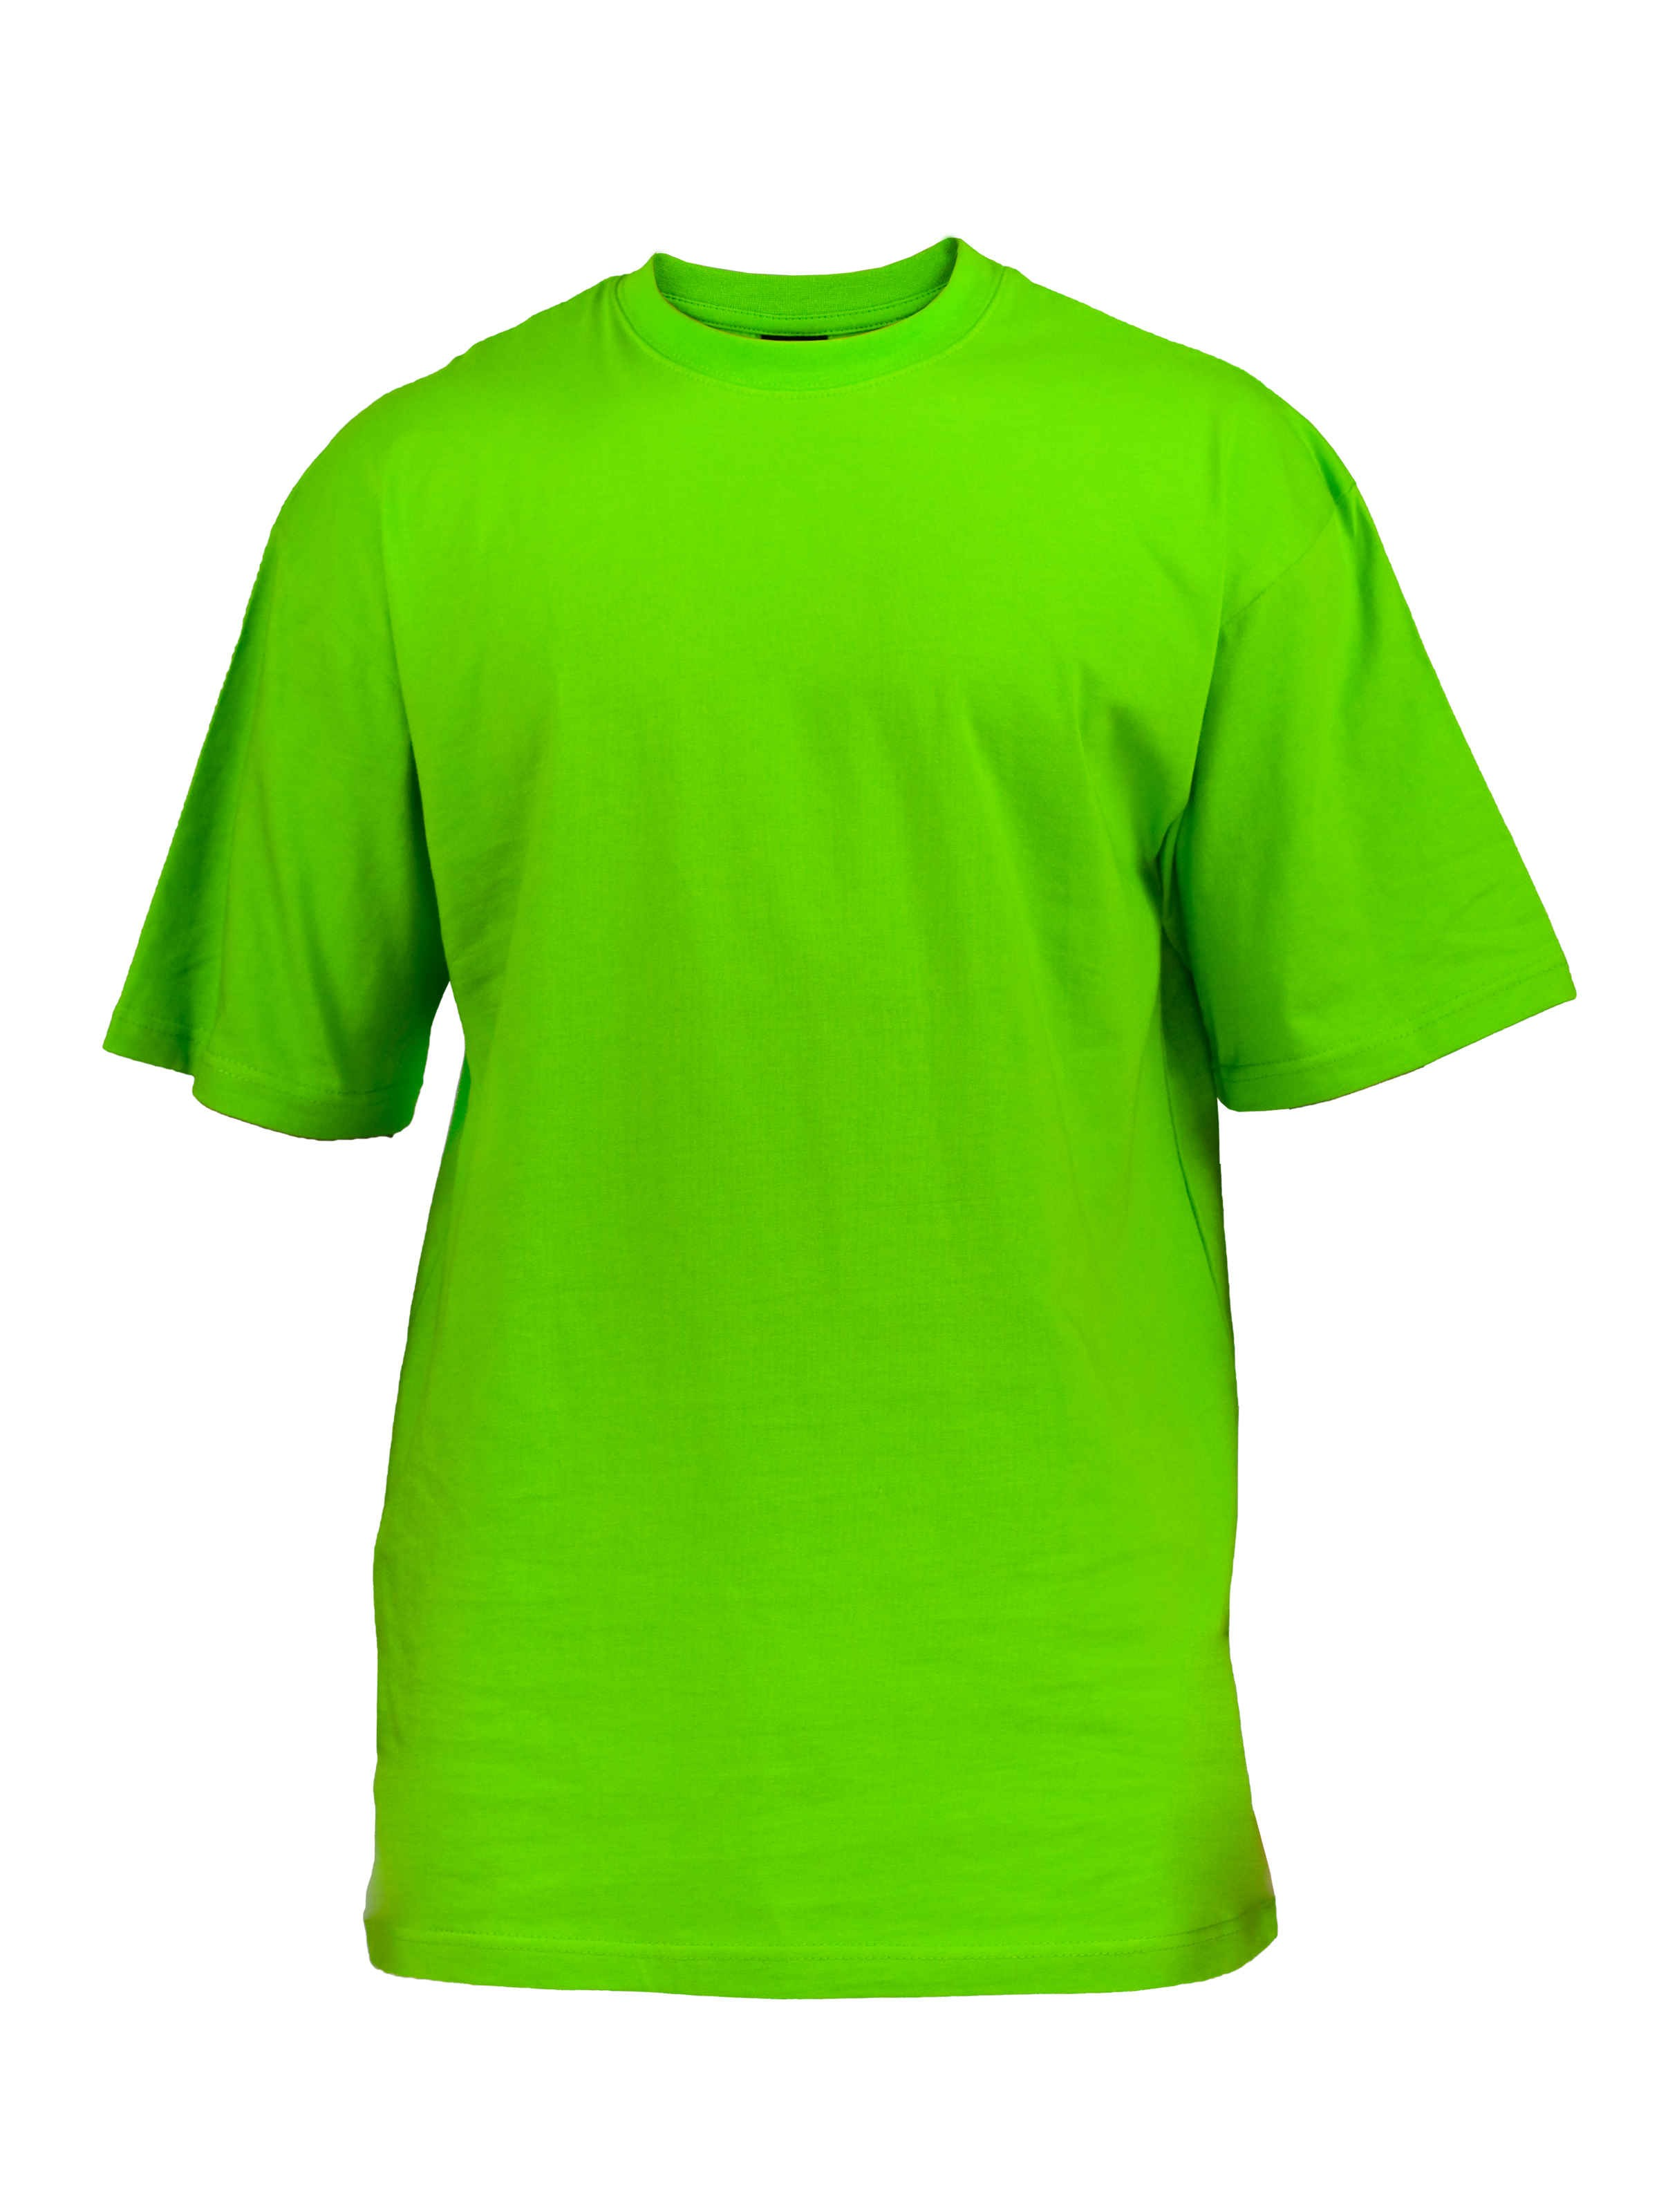 4, results for lime green t shirt Save this search. Postage to Guaranteed 3-day delivery. Update your information See more like this Tangerine Active T Shirt S Small Lime Green Athletic Top V Neck New. Free returns. From United States; FAST 'N FREE. Estimated delivery Fri. 7. Sep.